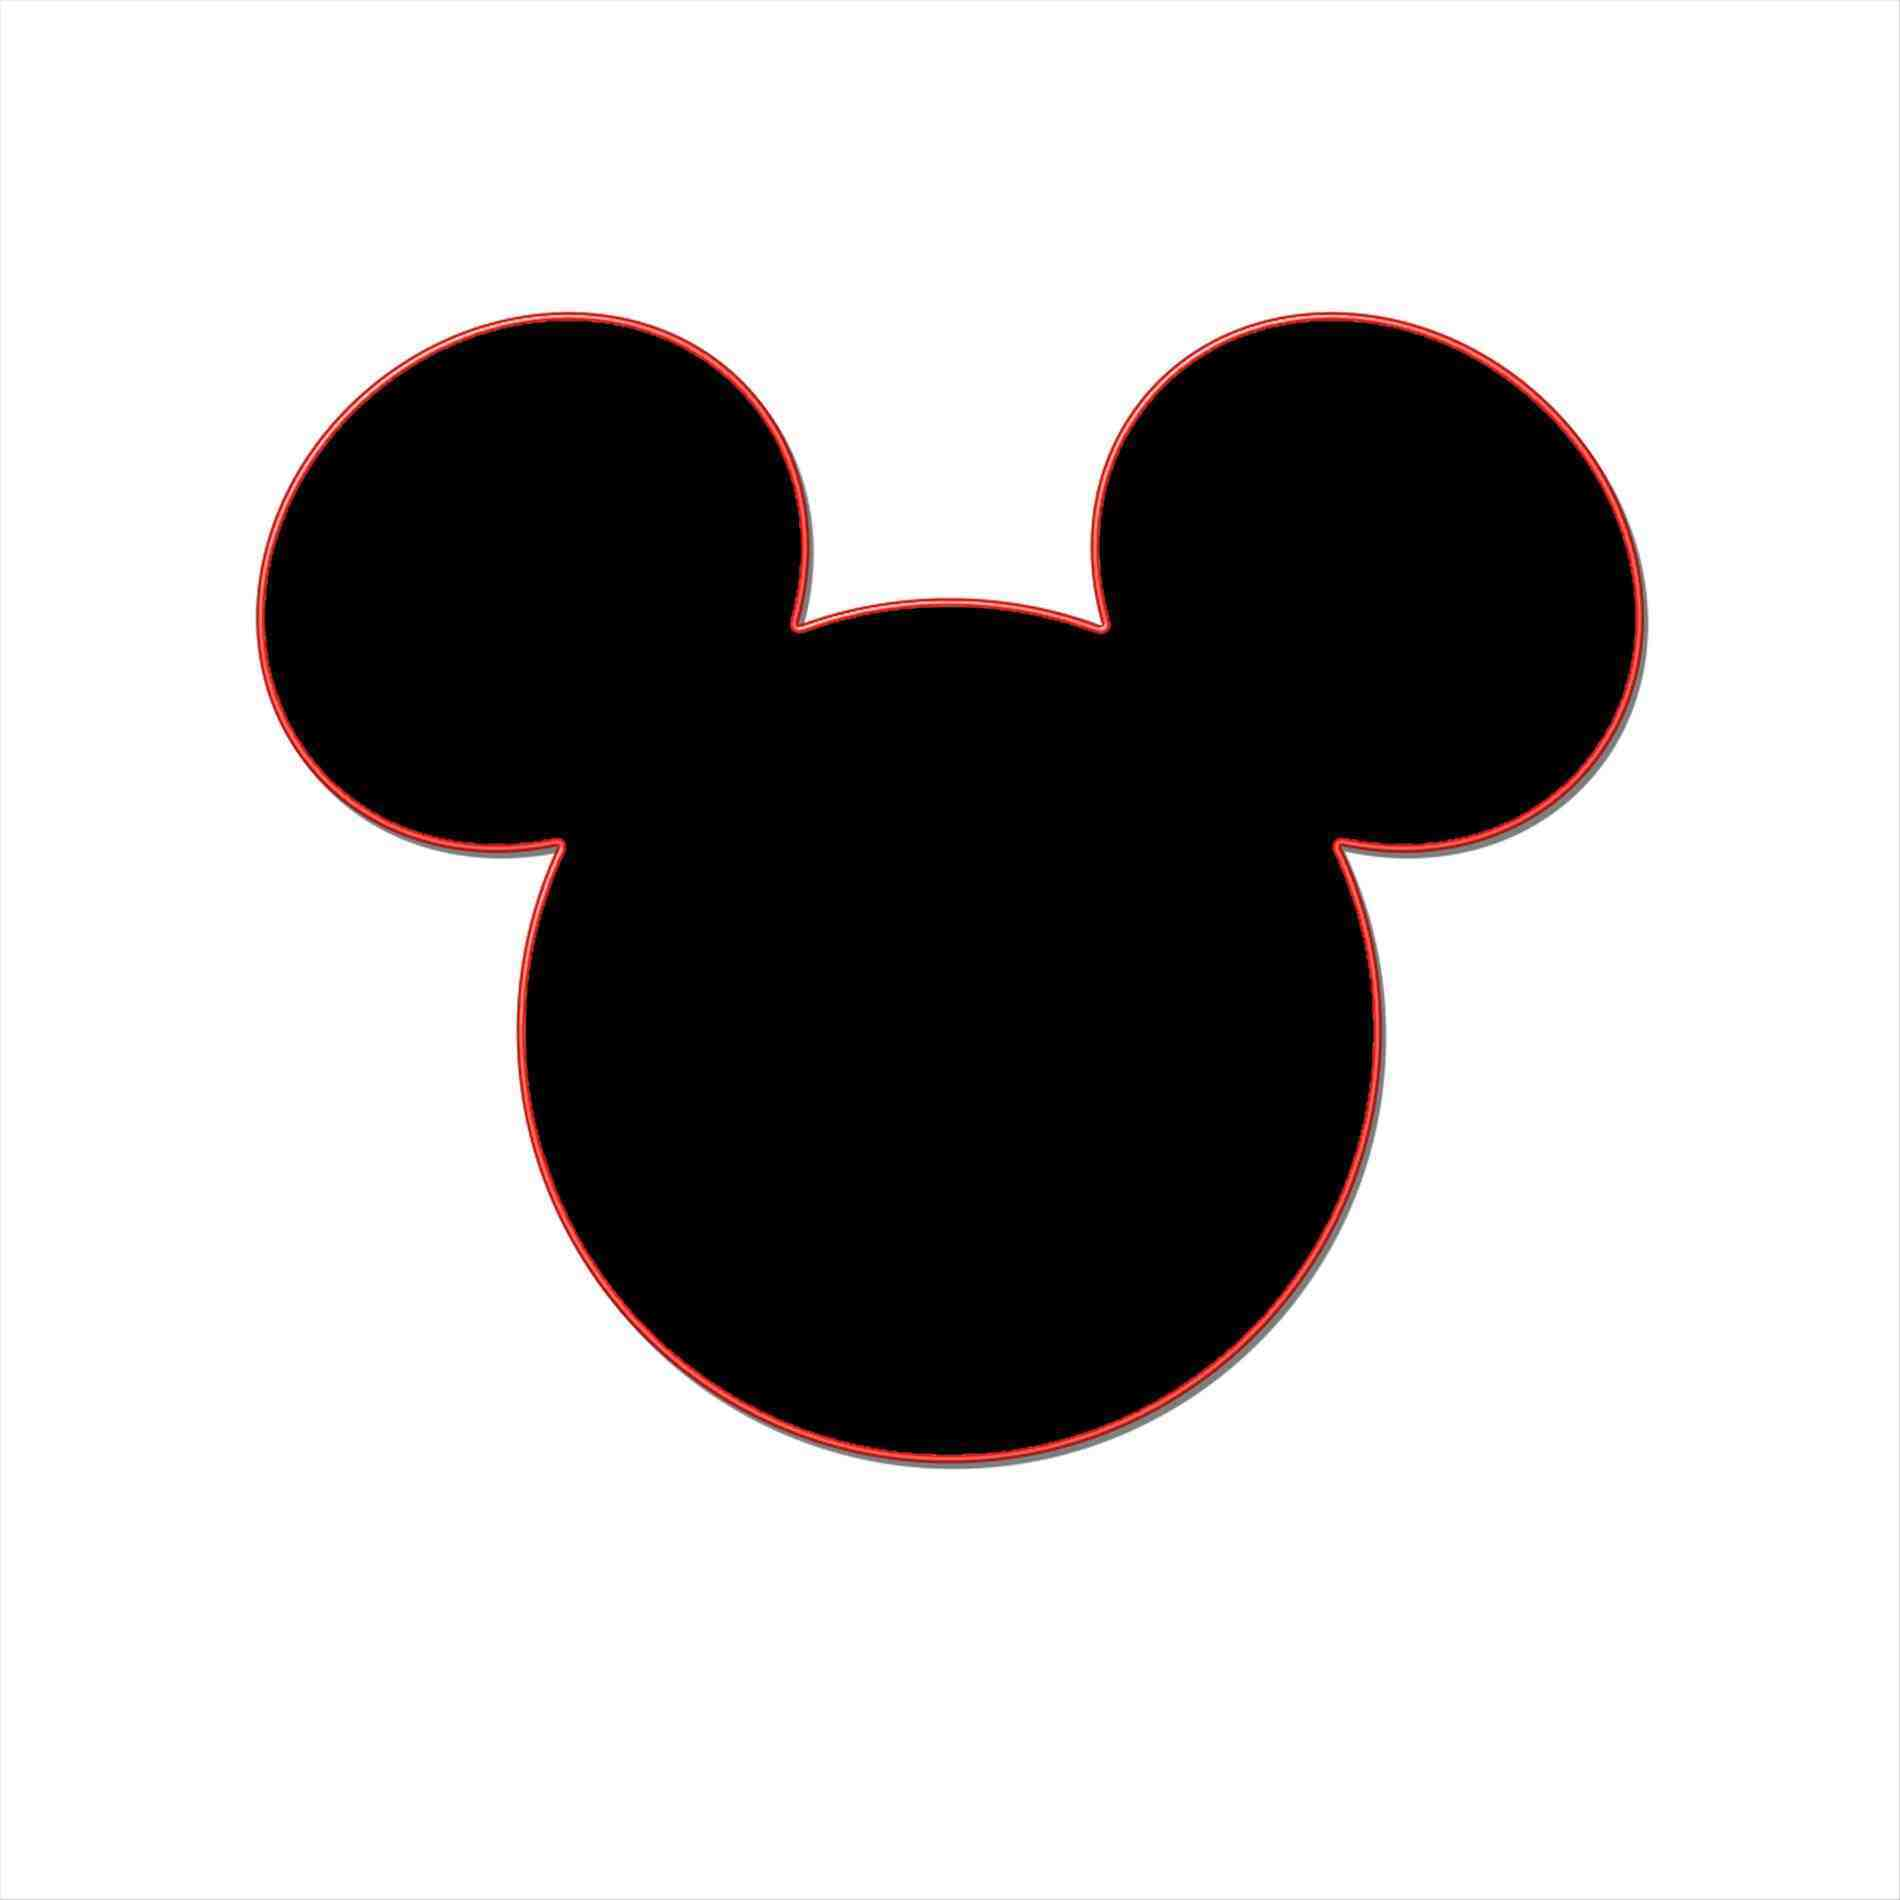 Mickey Mouse Silhouette Images at GetDrawings.com | Free for ...